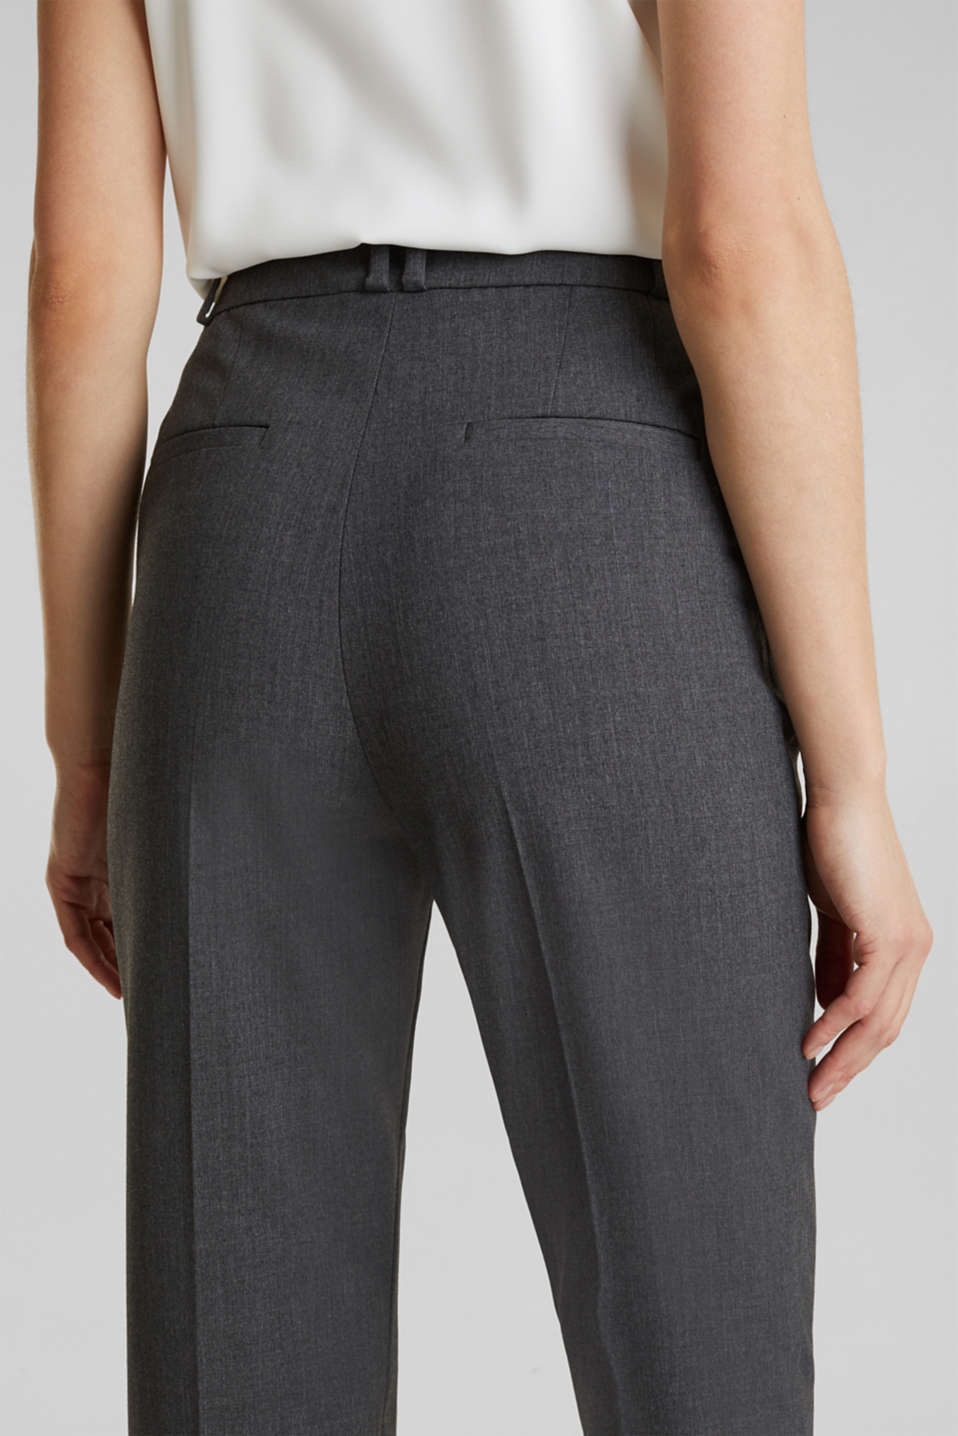 PURE BUSINESS stretch trousers with waist pleats, MEDIUM GREY 5, detail image number 5